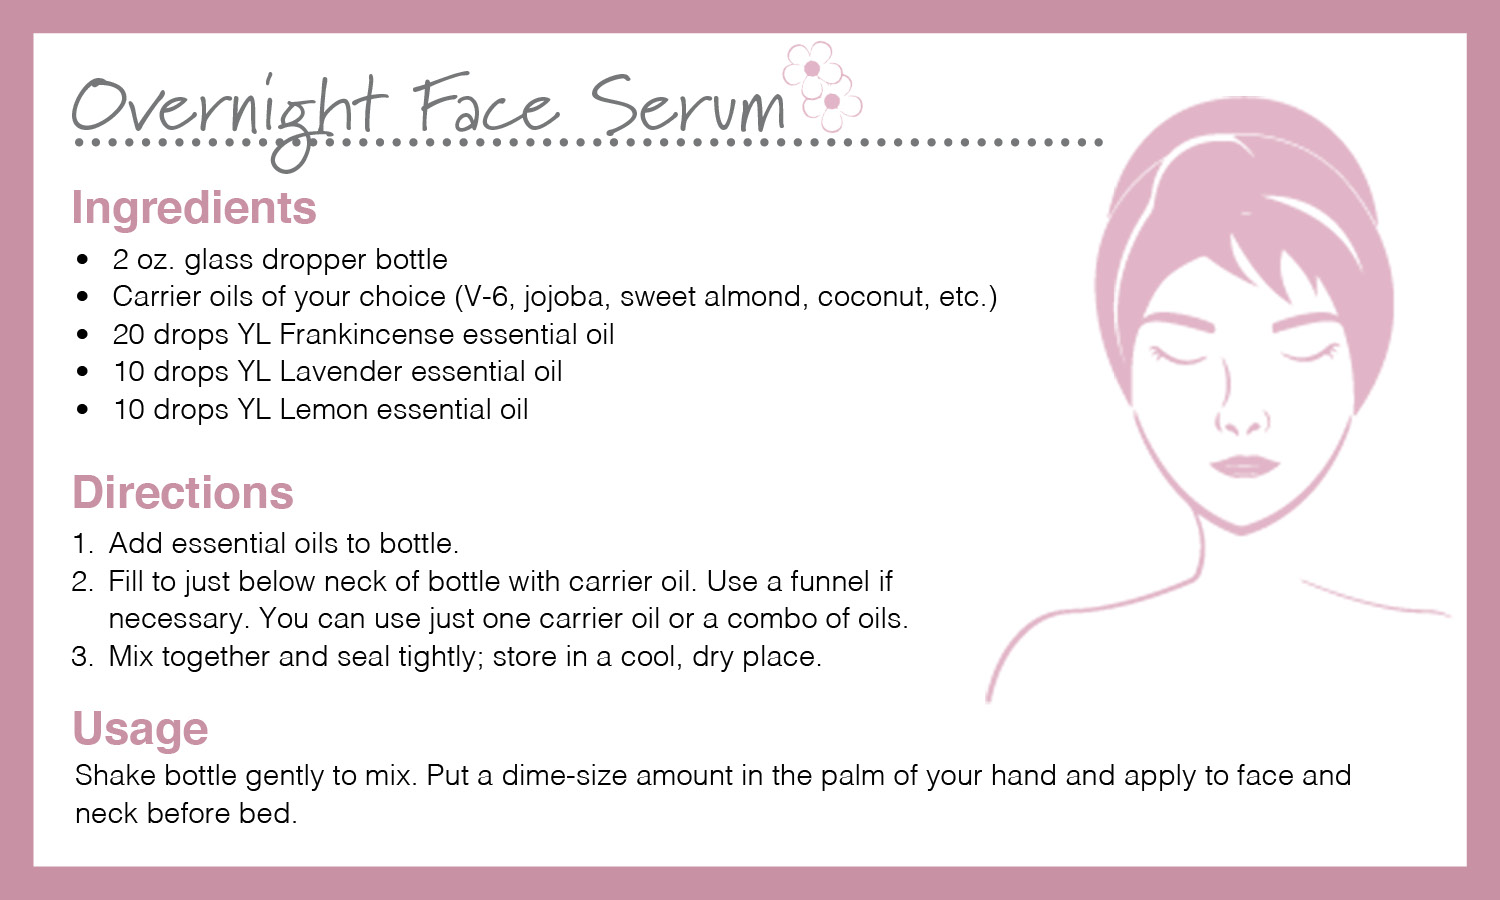 overnight face serum, holiday gift giving